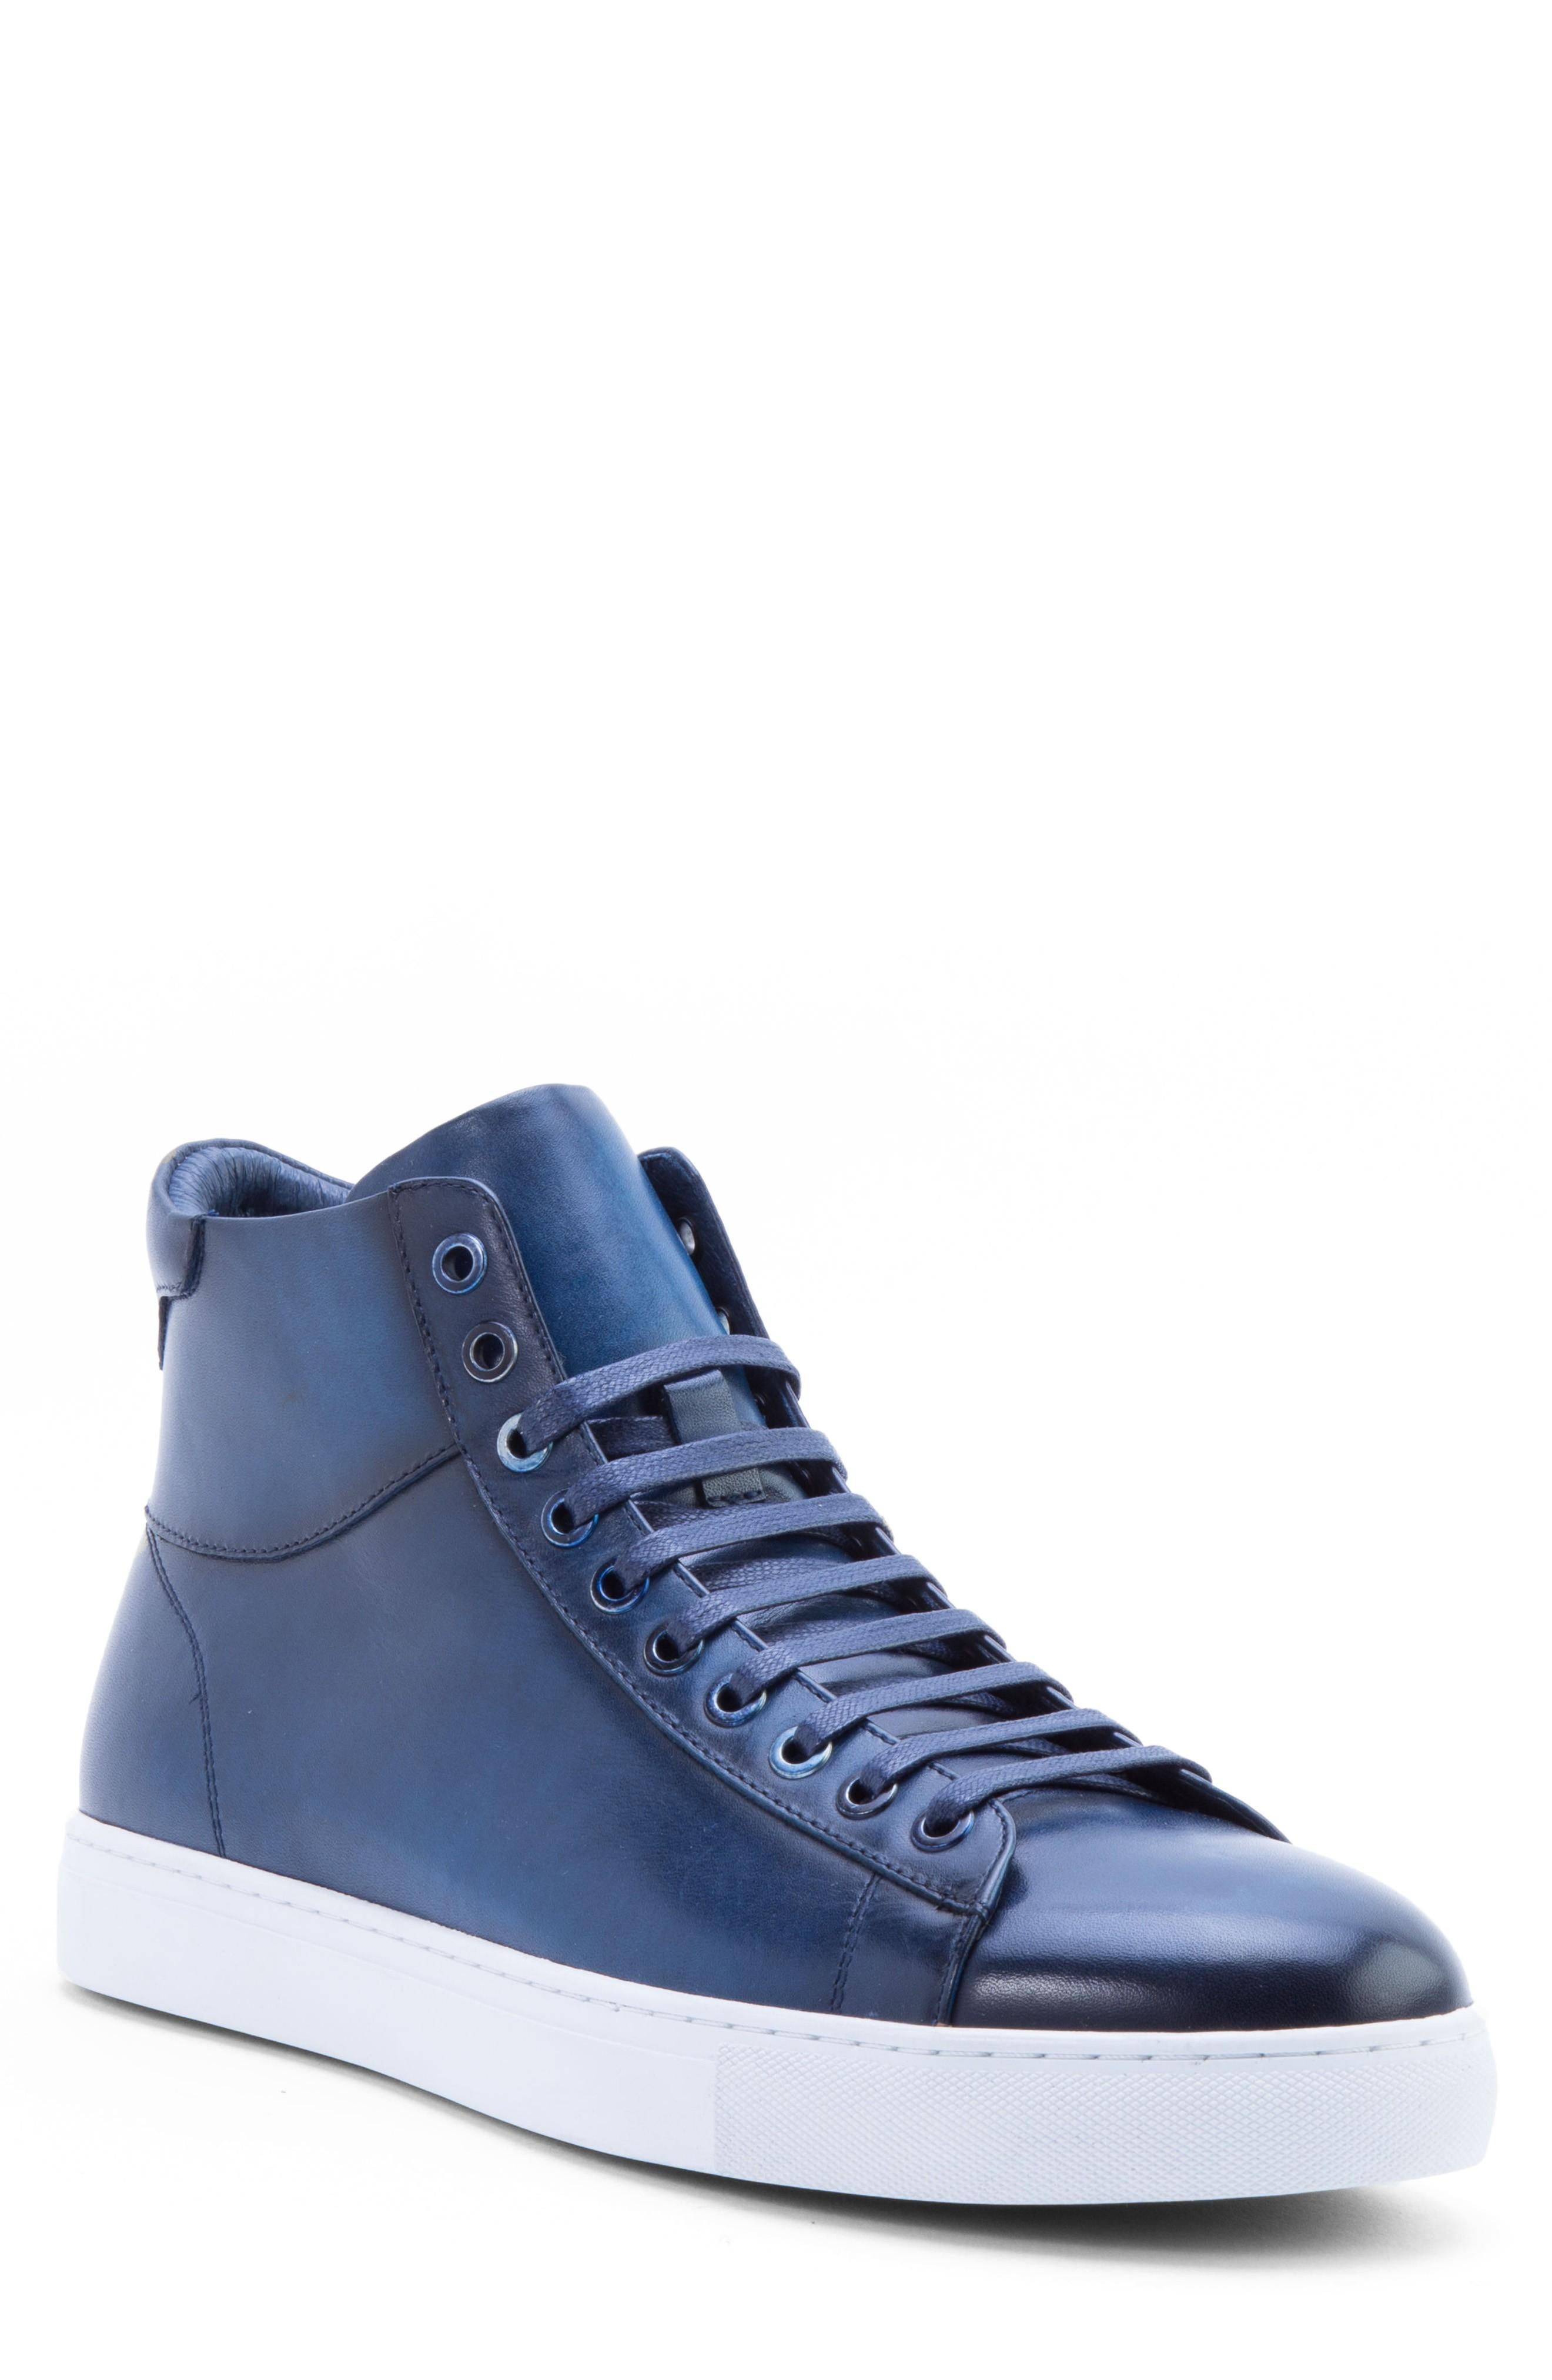 Zanzara Spinback High Top Sneaker In Blue Leather